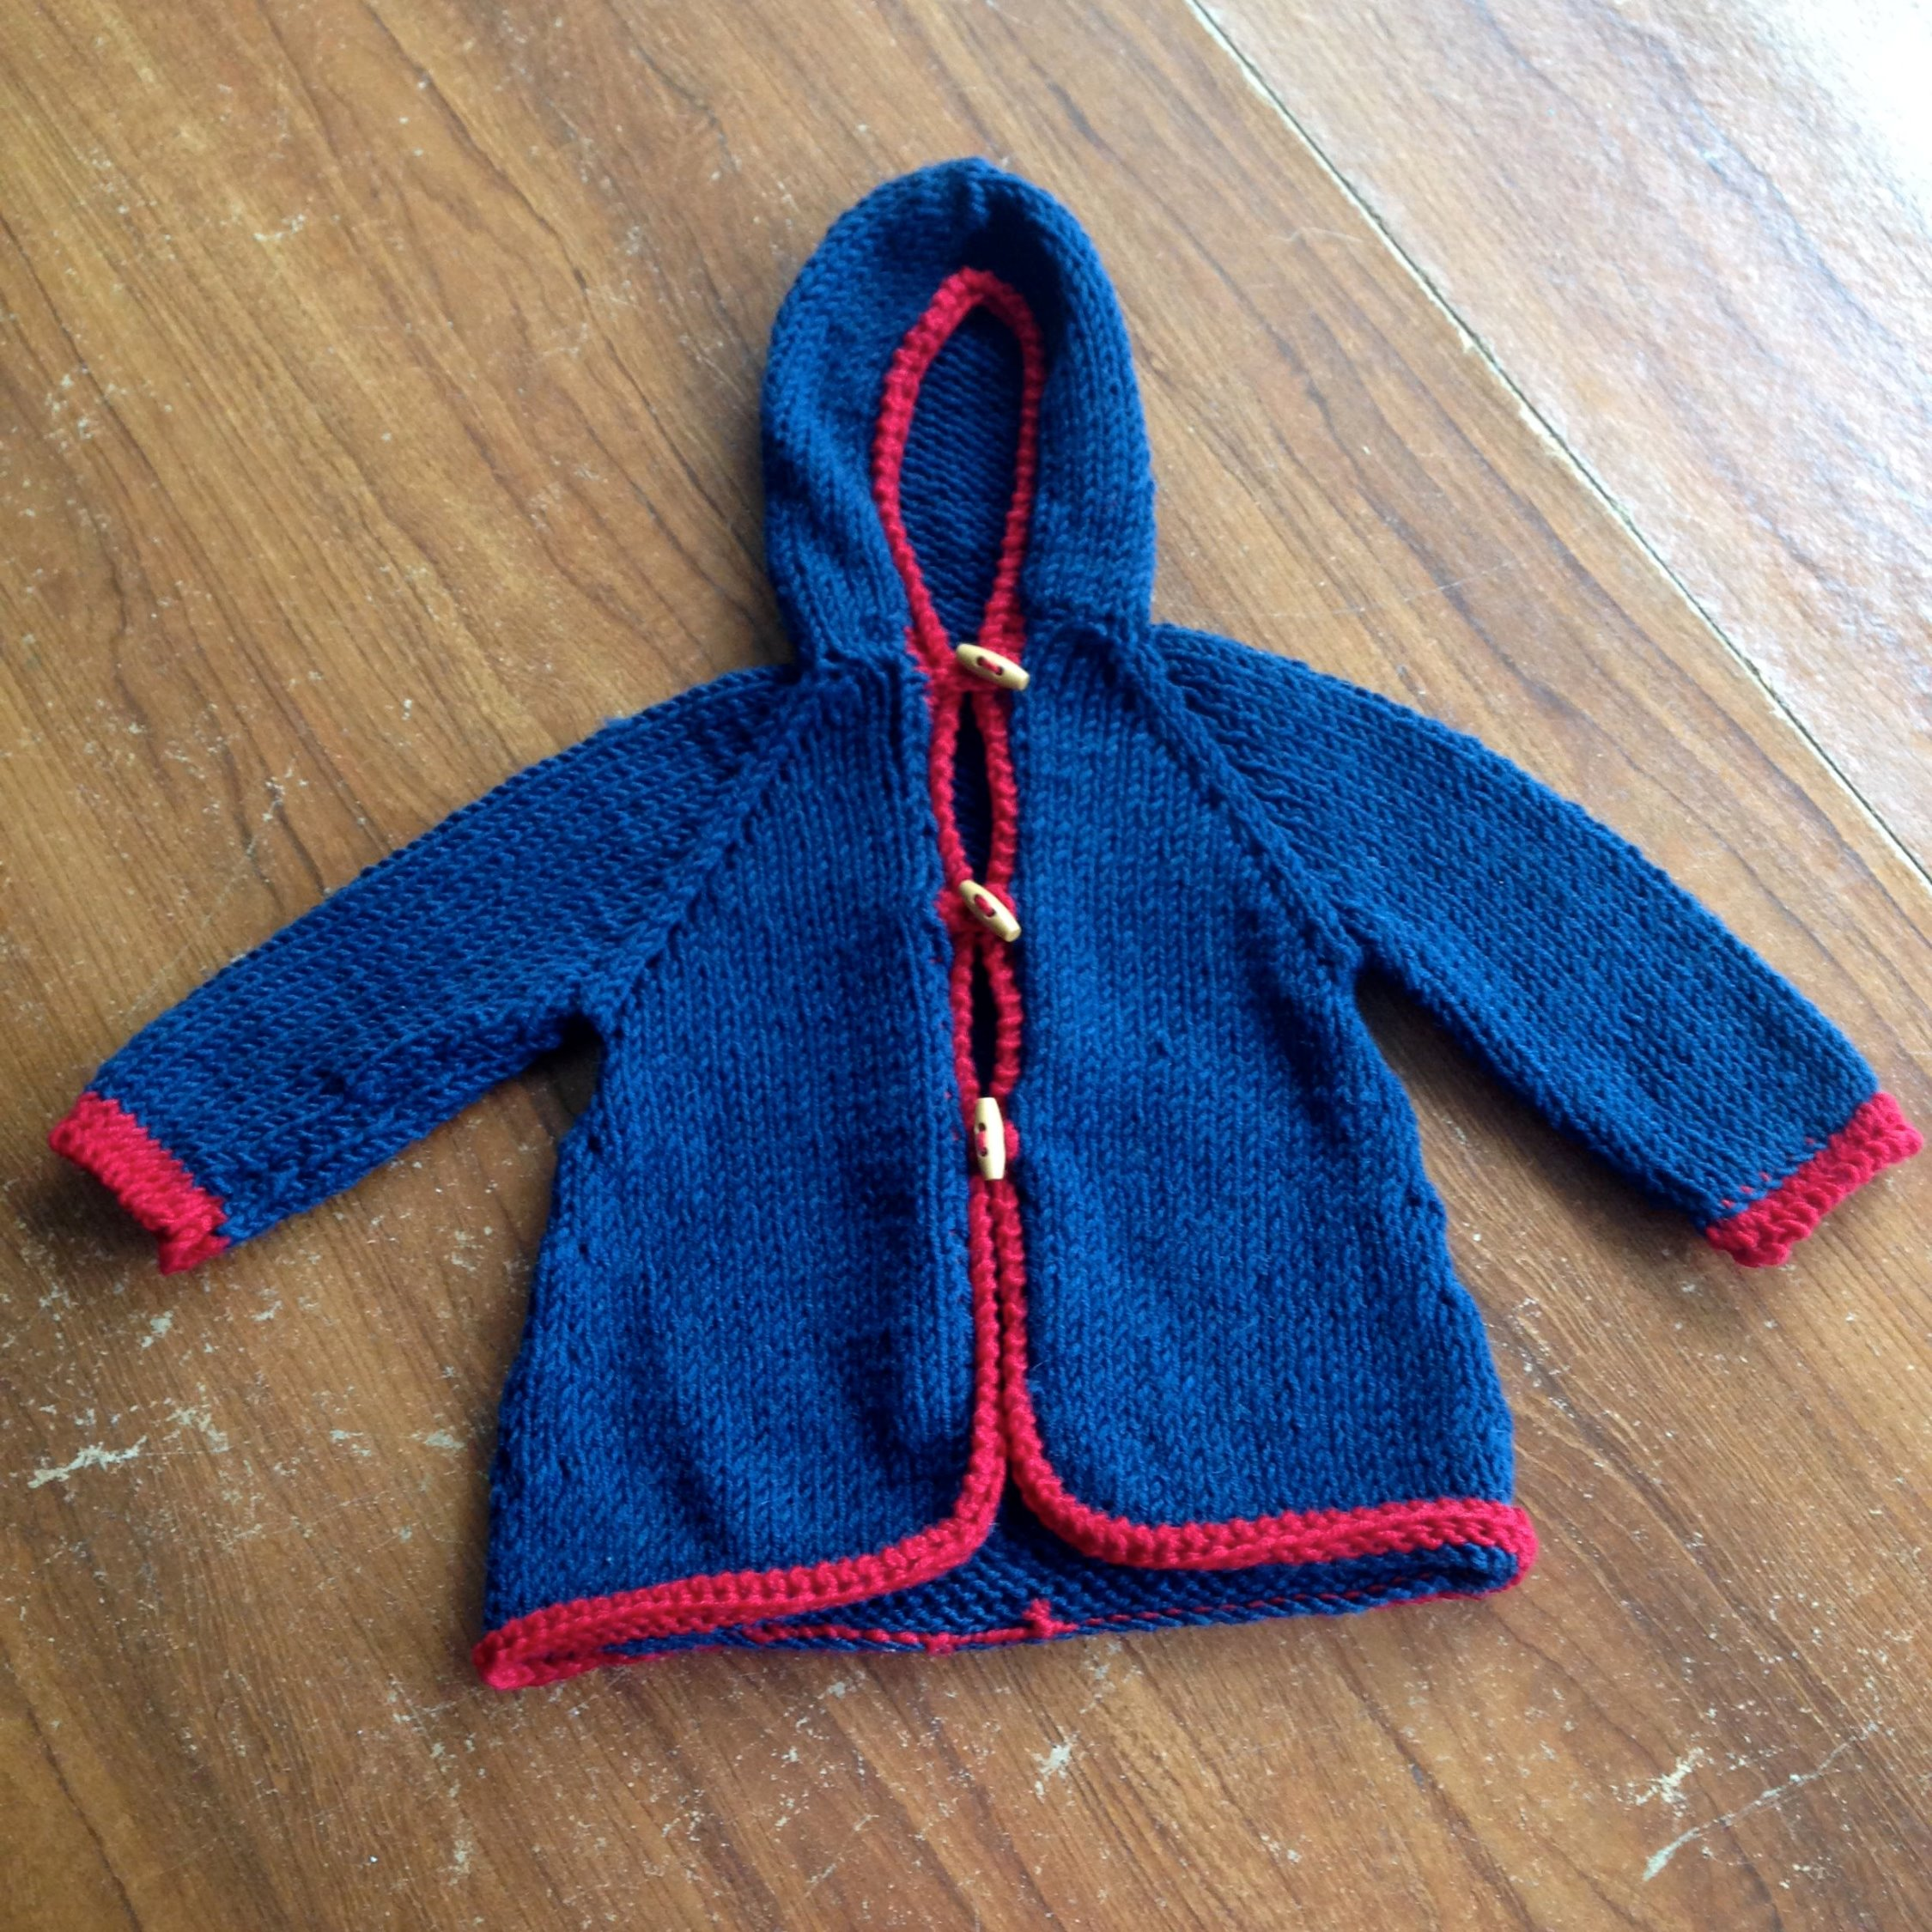 knitted Blue and Red baby hoodie